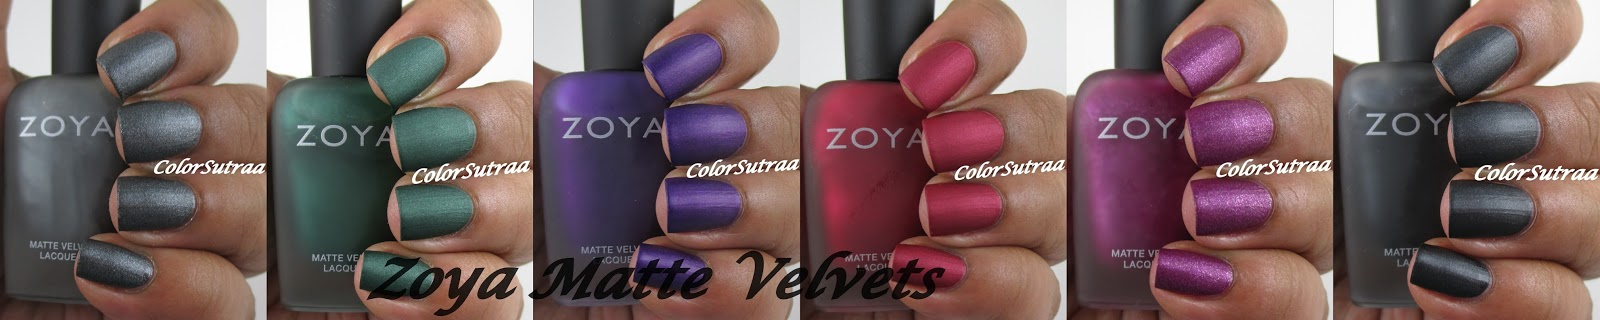 Zoya-Matte-Velvet-collection